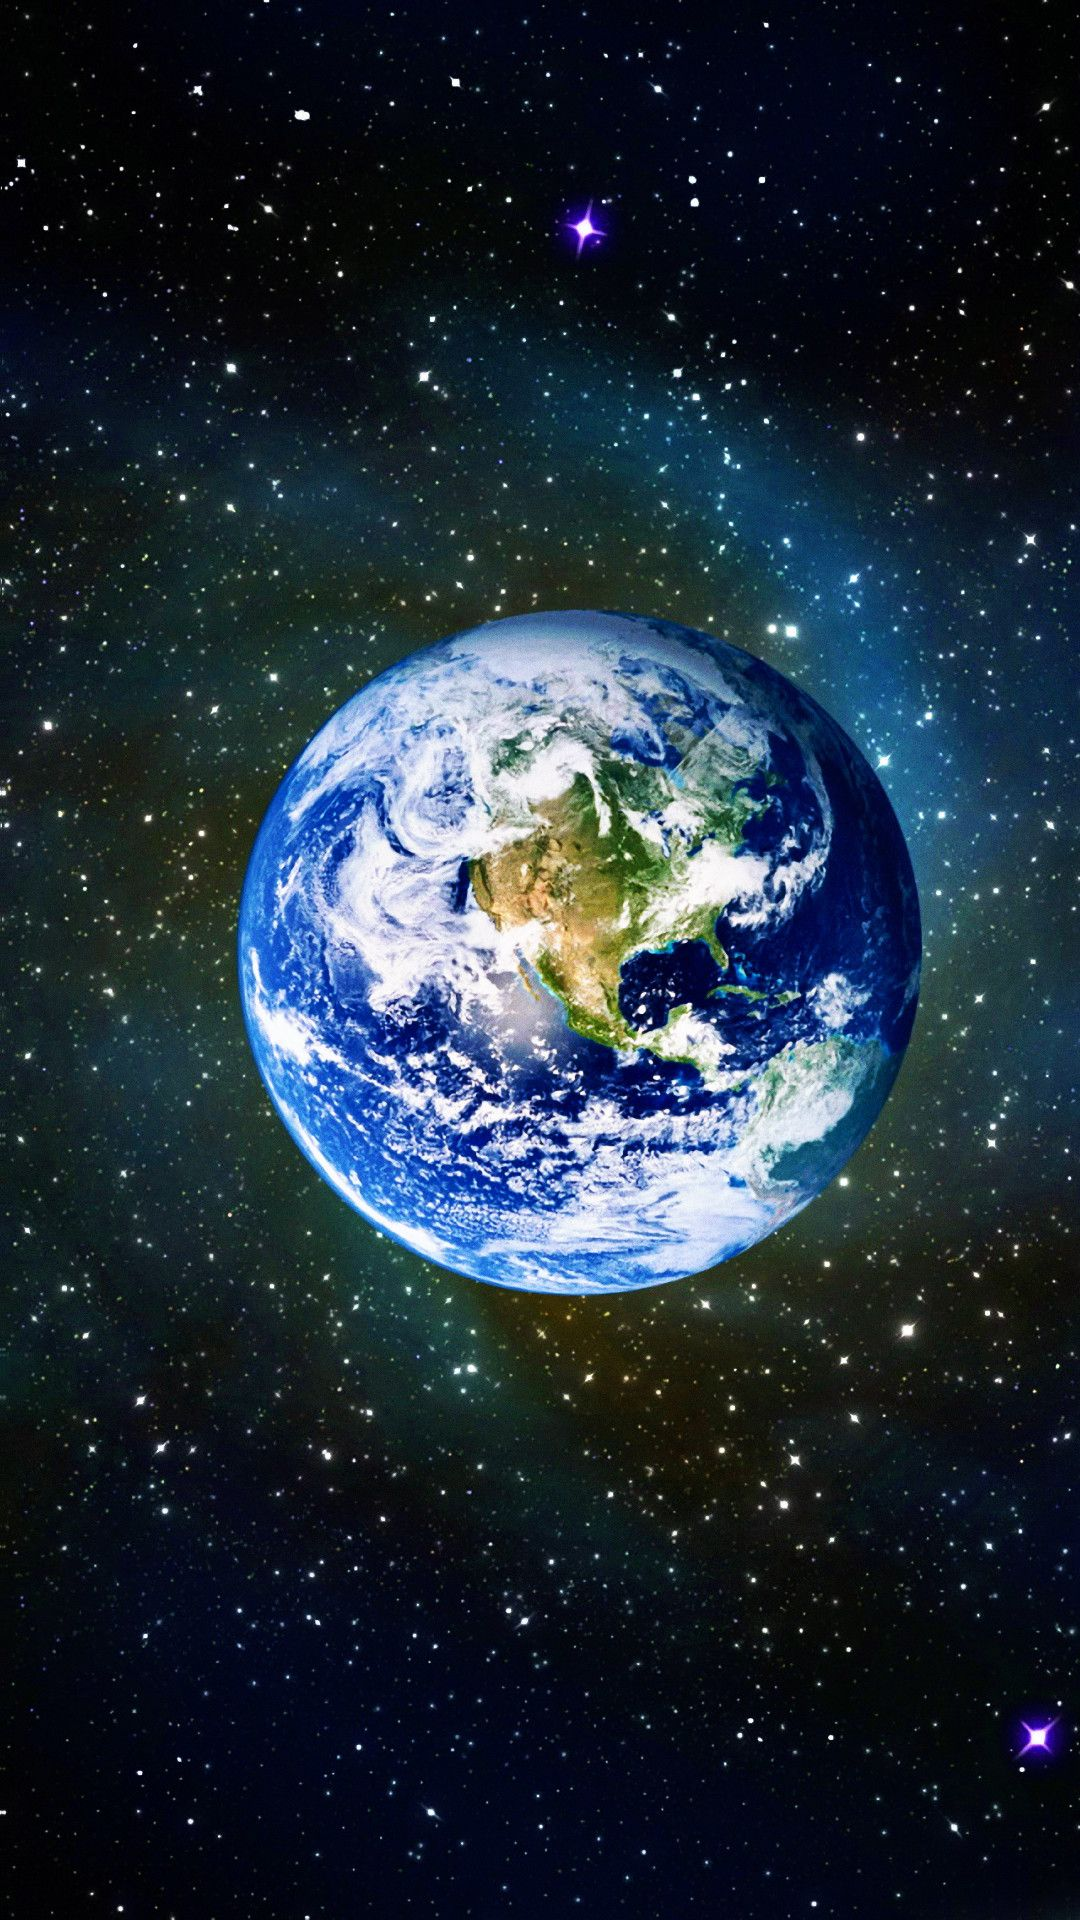 Awesome Earth Images Hd Wallpaper Download Pictures In 2020 Wallpaper Earth Wallpaper Earth Images Hd